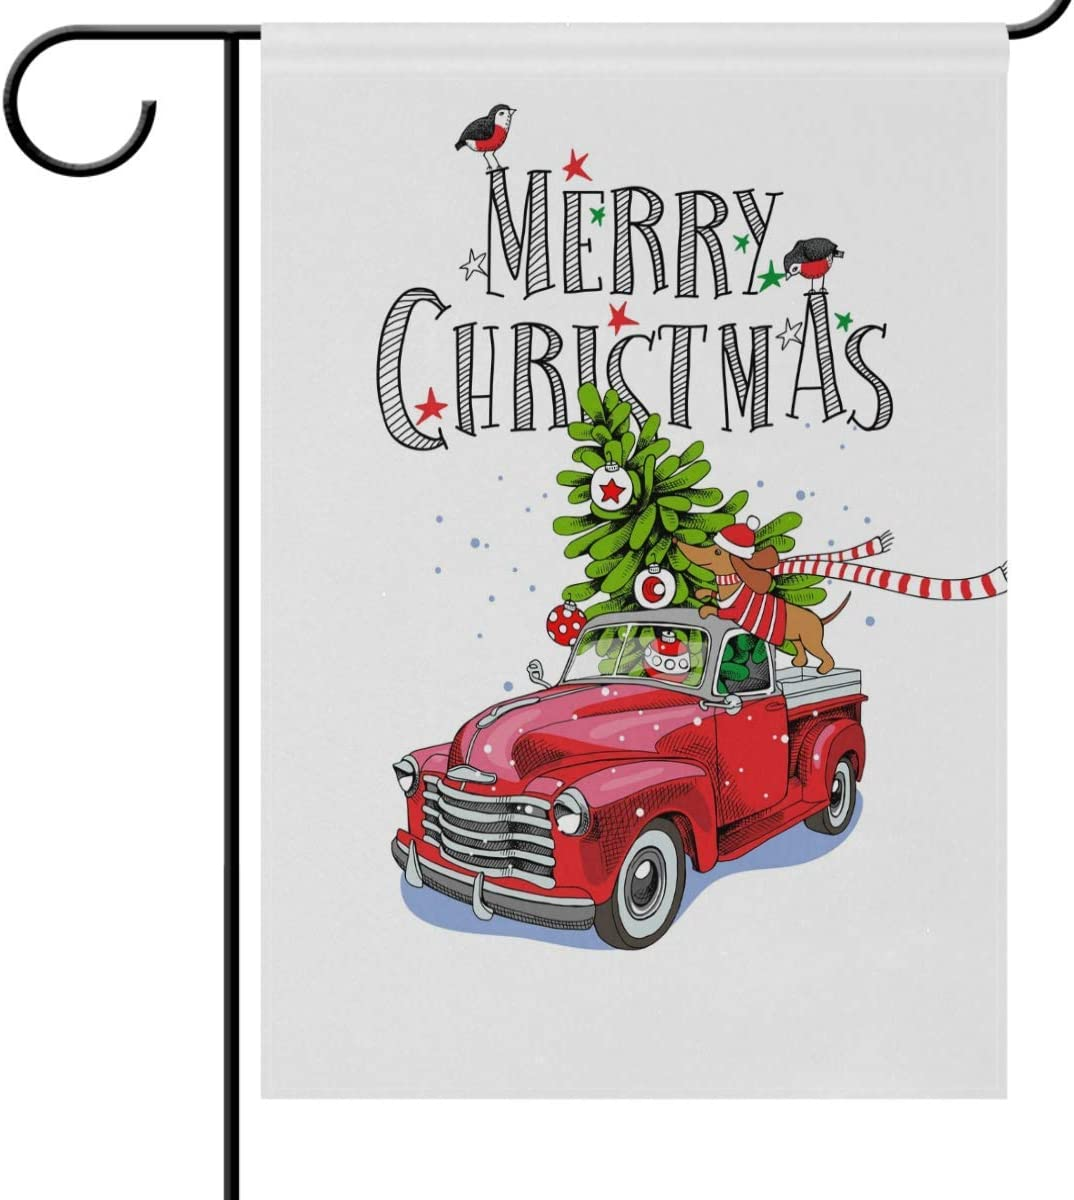 Christmas Red Truck Car Dachshund Dog Garden Yard Flag Banner House Home Decor 28 x 40 inch, Tree Snow Bird New Year Large Decorative Double Sided Welcome Flags for Holiday Wedding Party Outdoor Ou